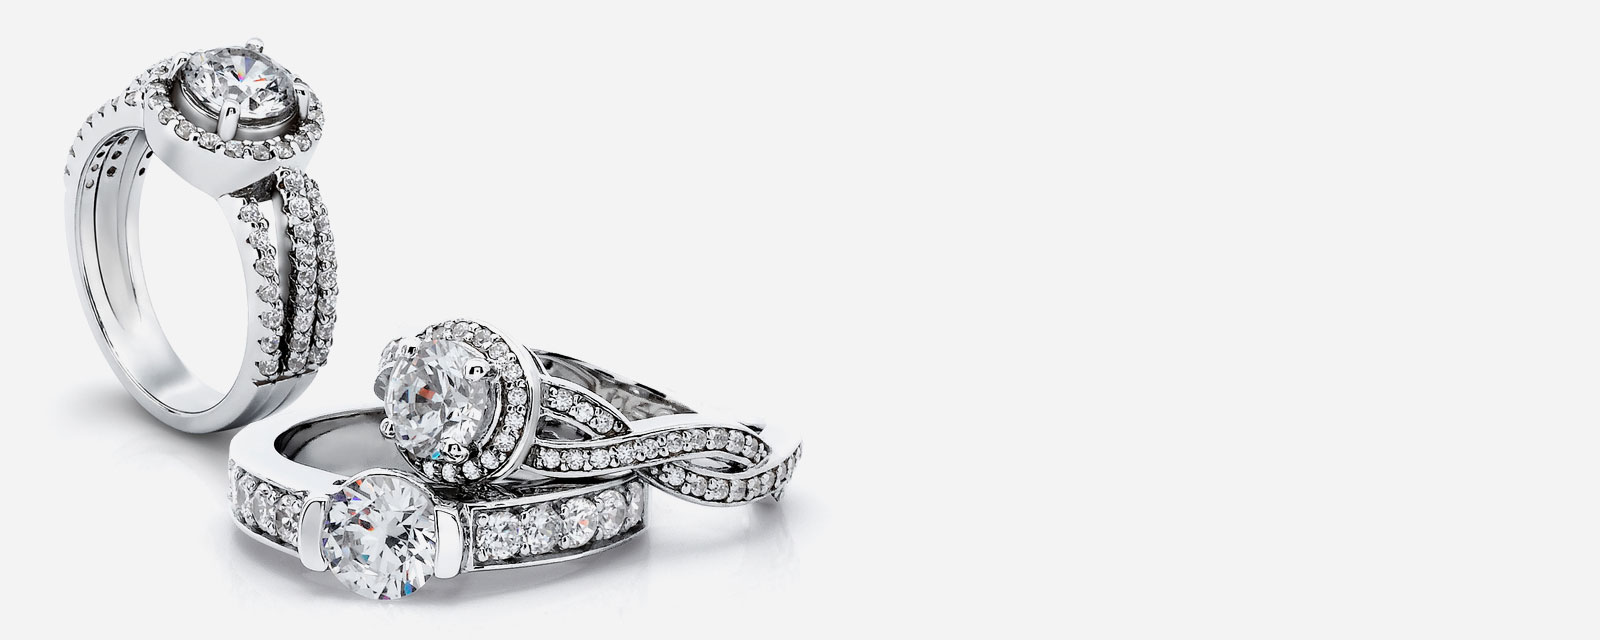 Create Your Own Engagement Ring Select your ring setting and pair it with your ideal diamond. Kiefer Jewelers Lutz, FL